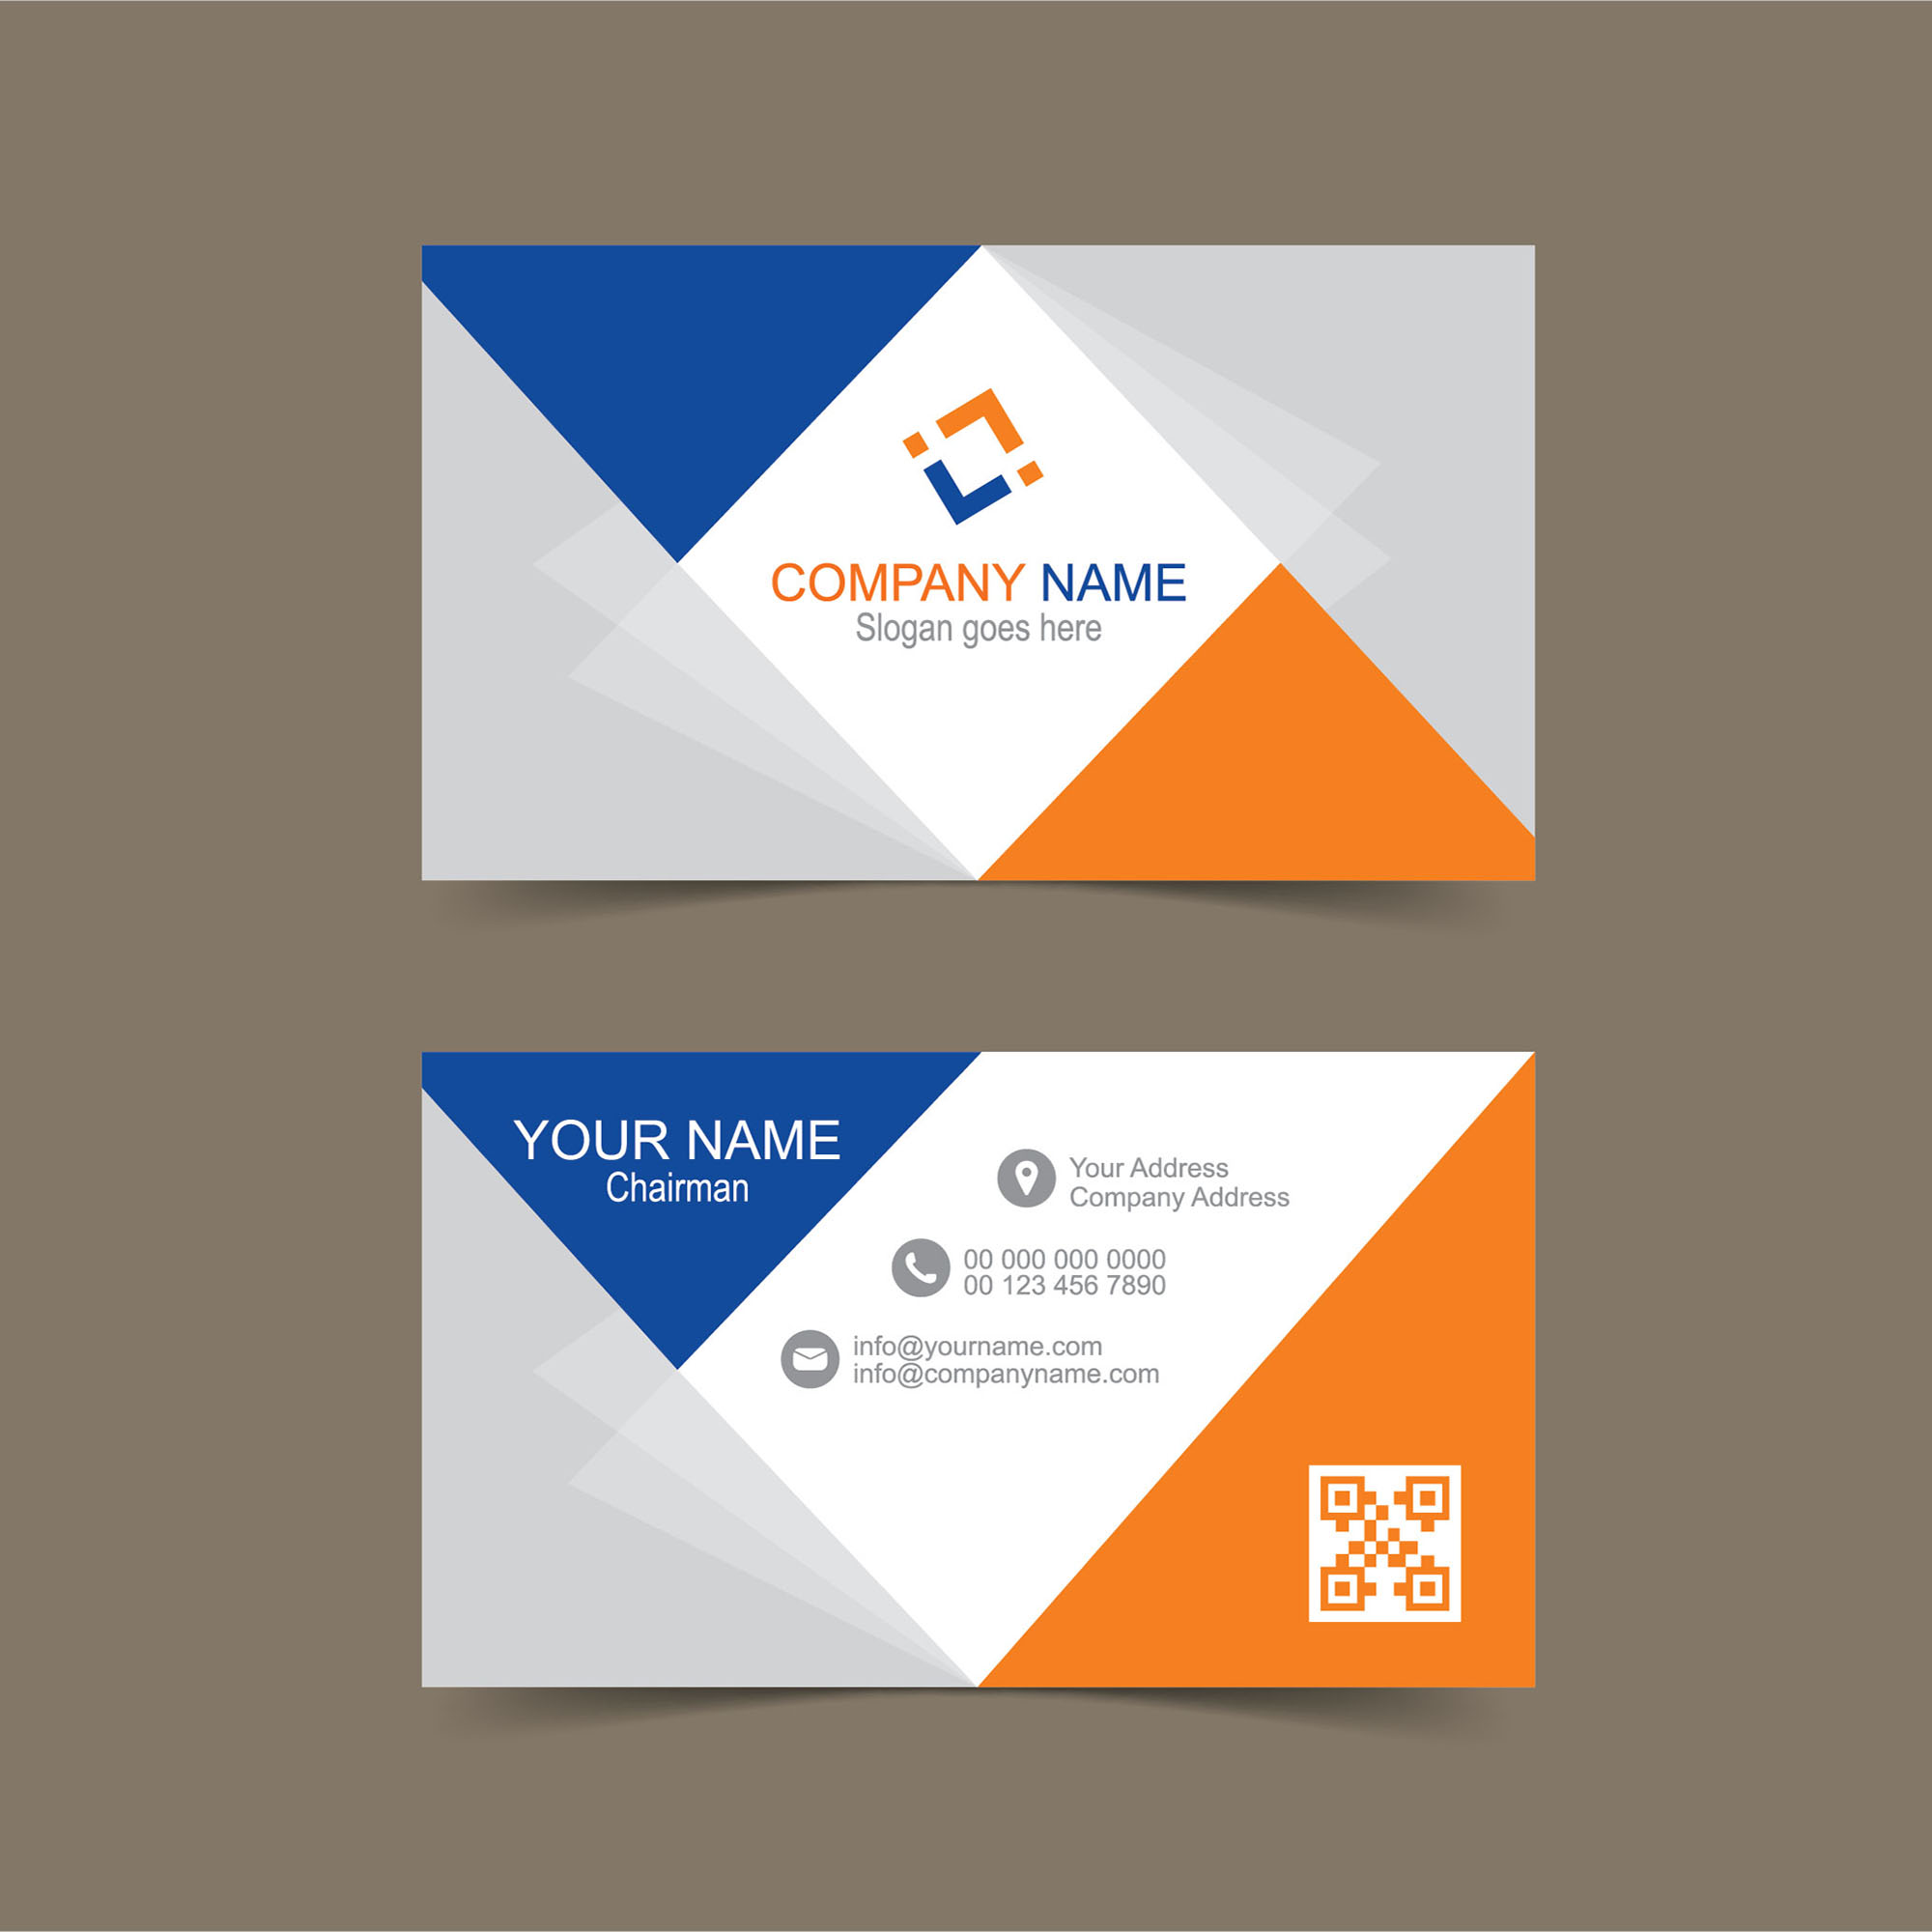 Free business card template for illustrator wisxi business card business cards business card design business card template design templates accmission